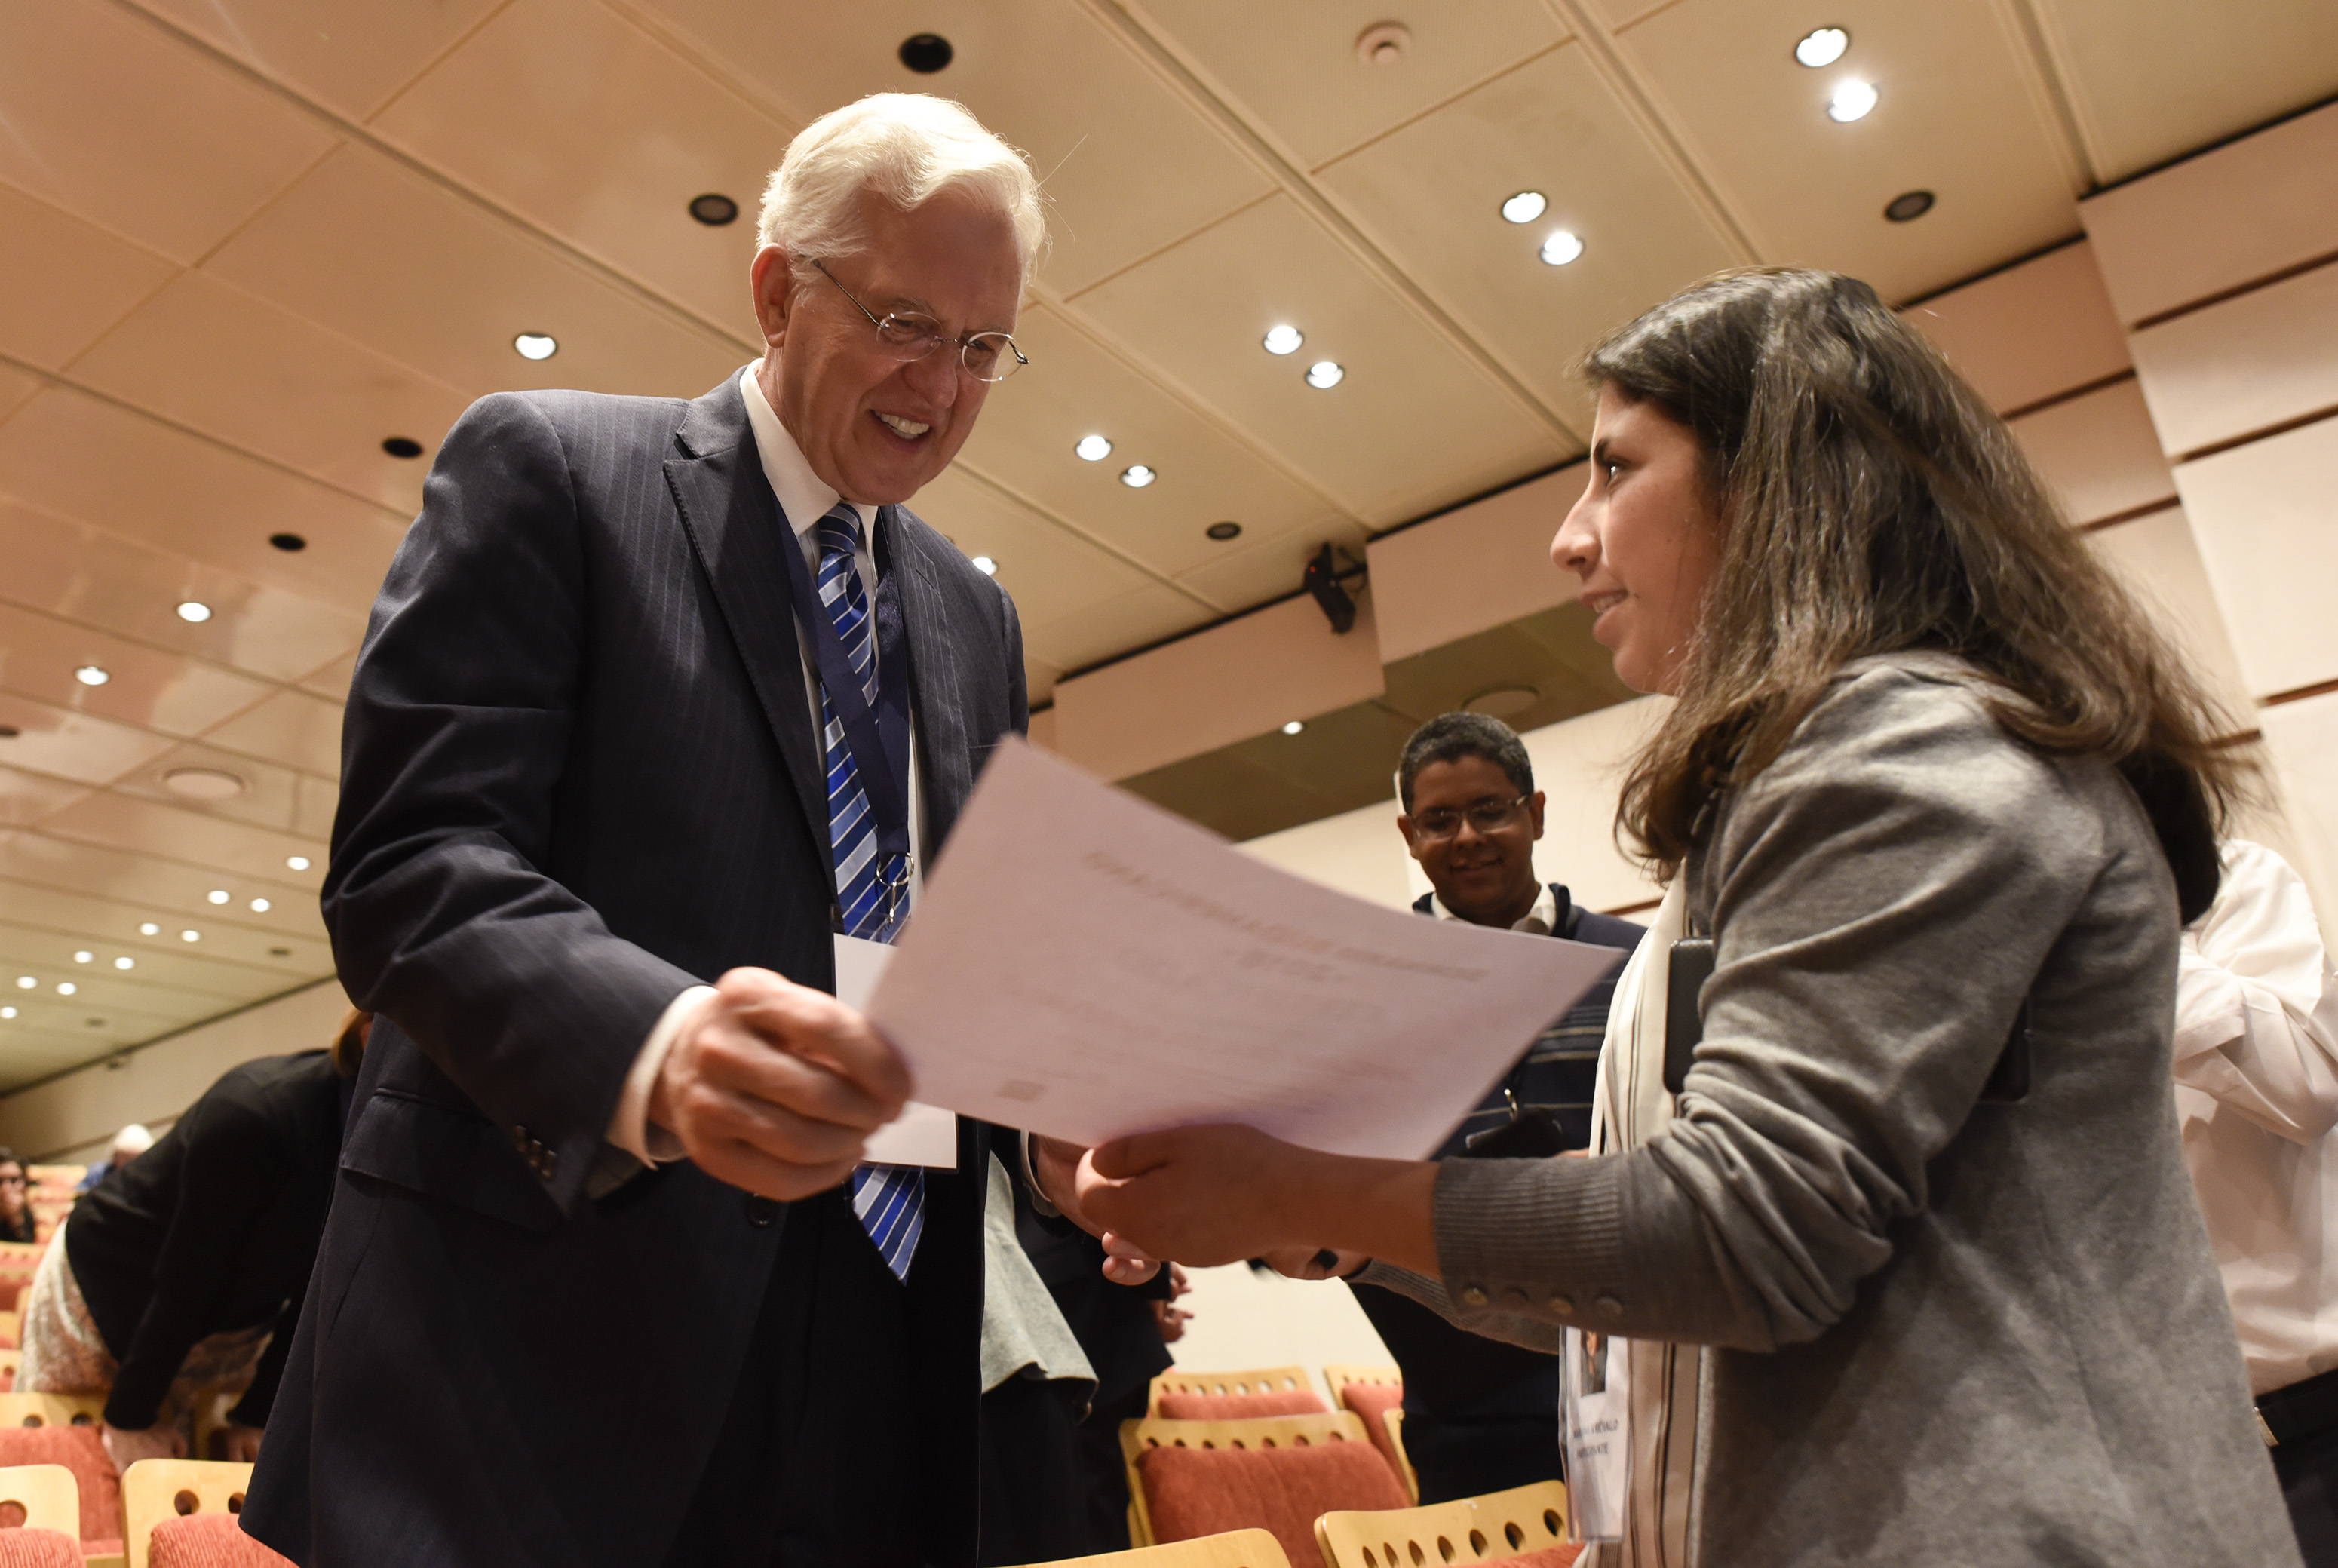 Elder D. Todd Christofferson member of Twelve Apostles of The Church of Jesus Christ of Latter-day Saints speaks with an attendee of the G20 Interfaith Forum in Buenos Aires, Argentina, during a break on Wednesday, Sept. 26, 2018.